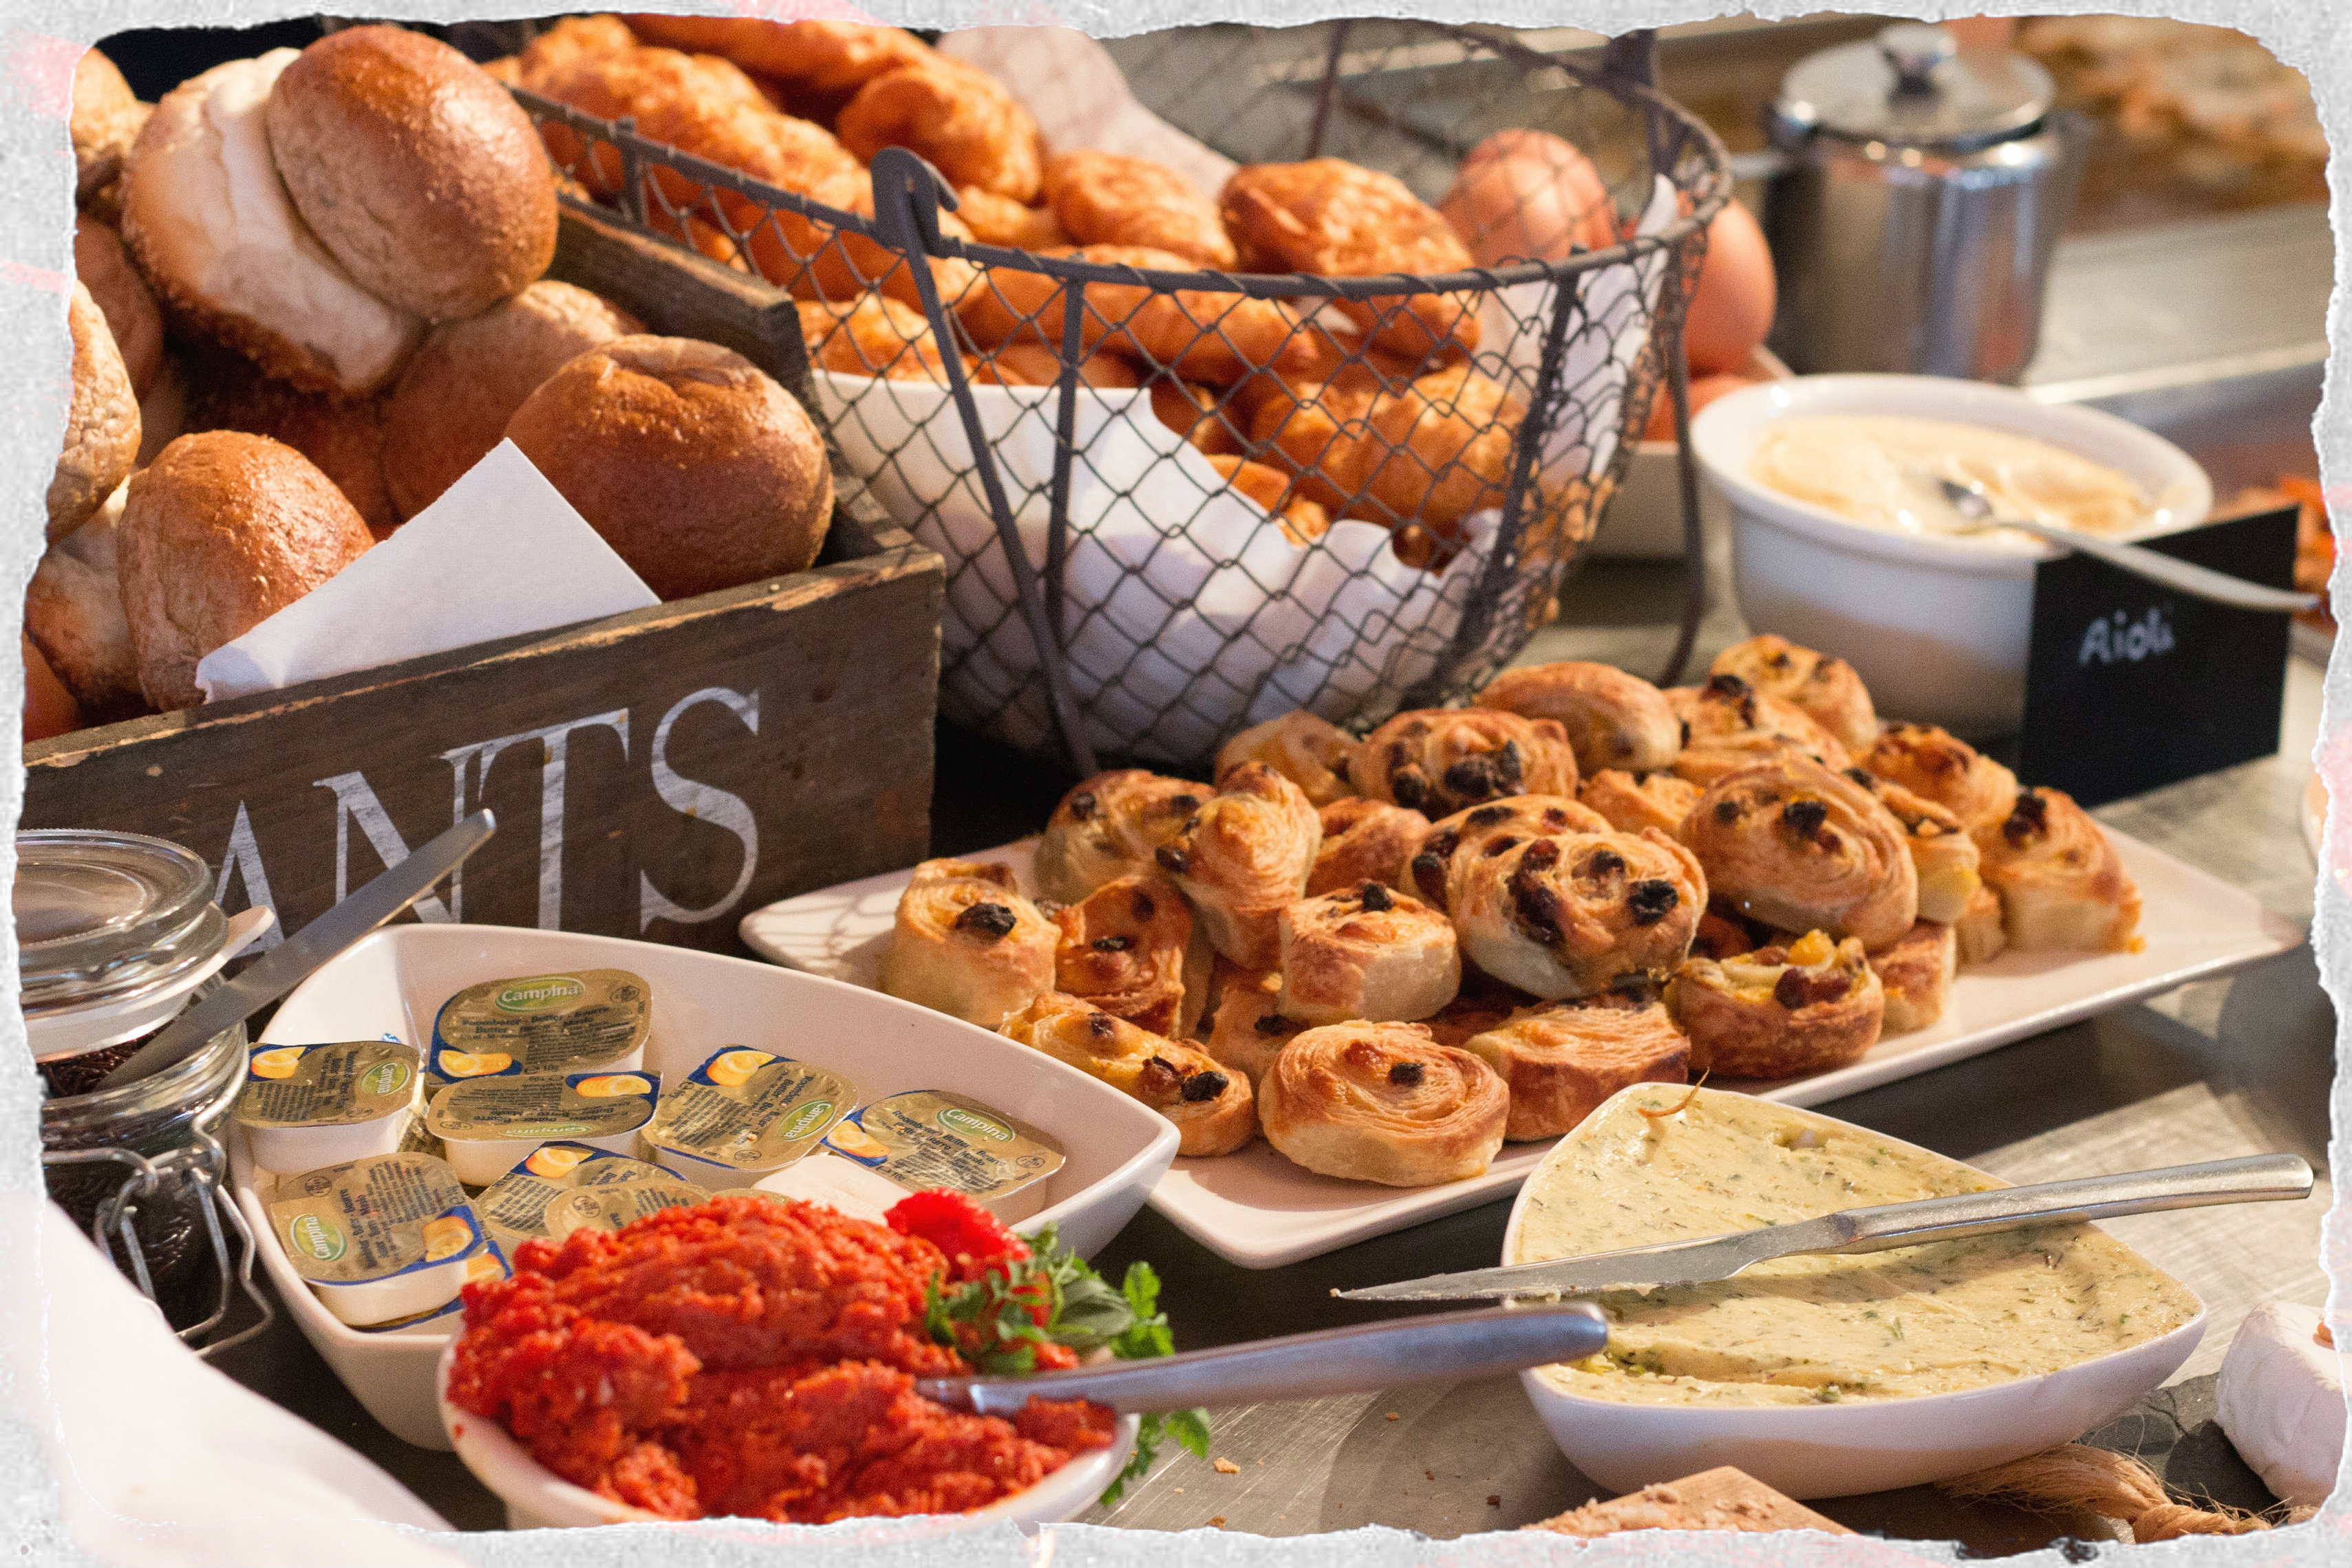 Lunchbuffet Amsterdam Lunch And Brunch Packages Prices Beachpavilion Netherlands